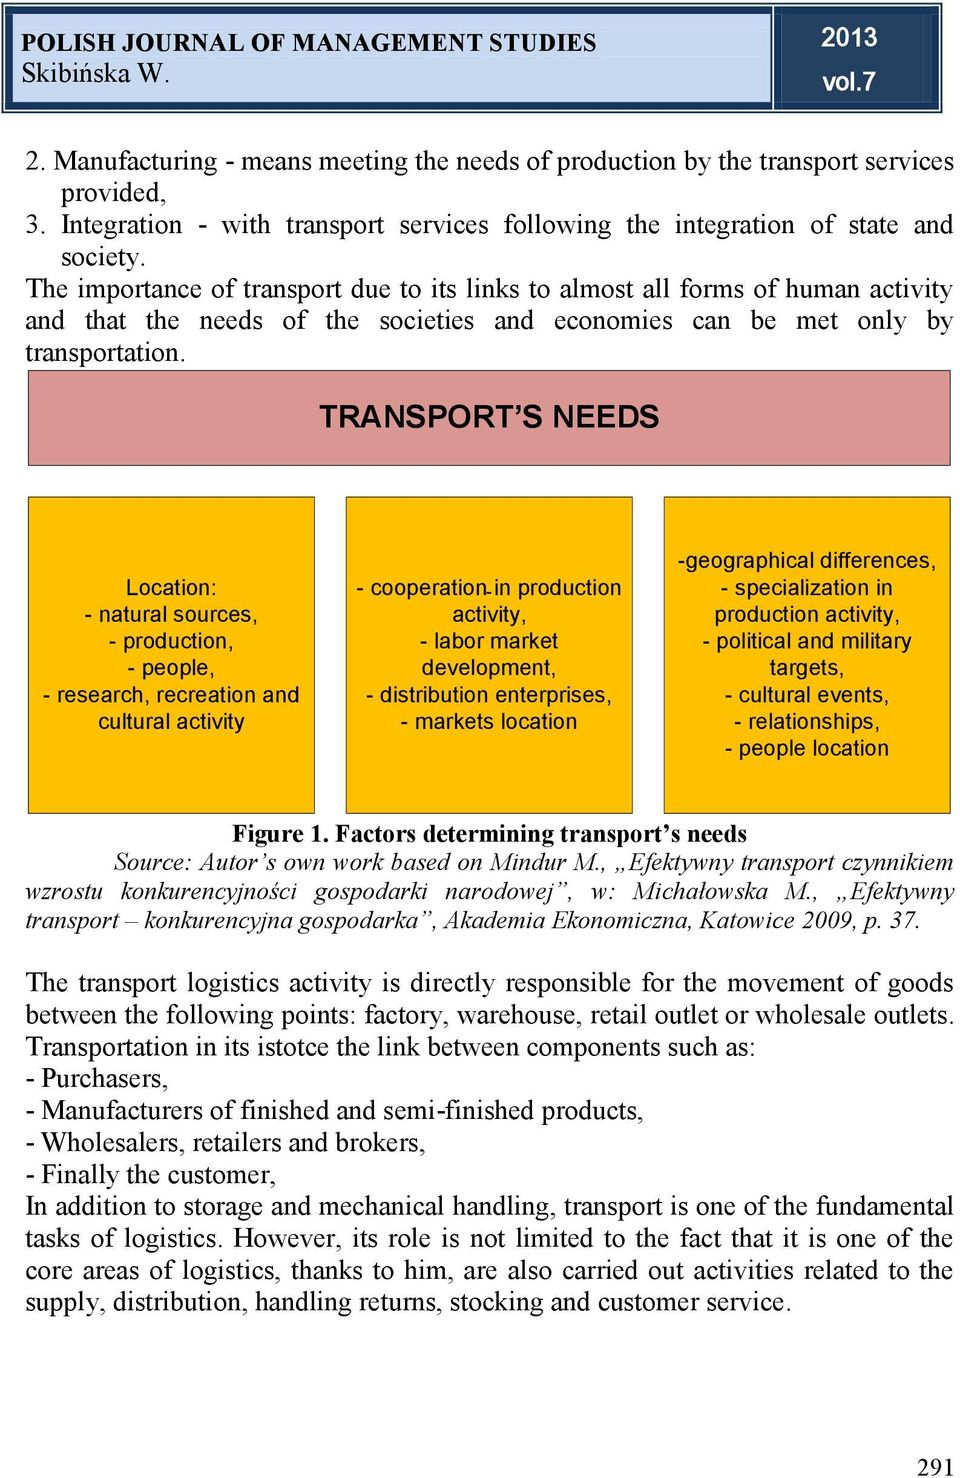 DYNAMICS OF TRANSPORTATION DEVELOPMENT AS A BASIS FOR THE